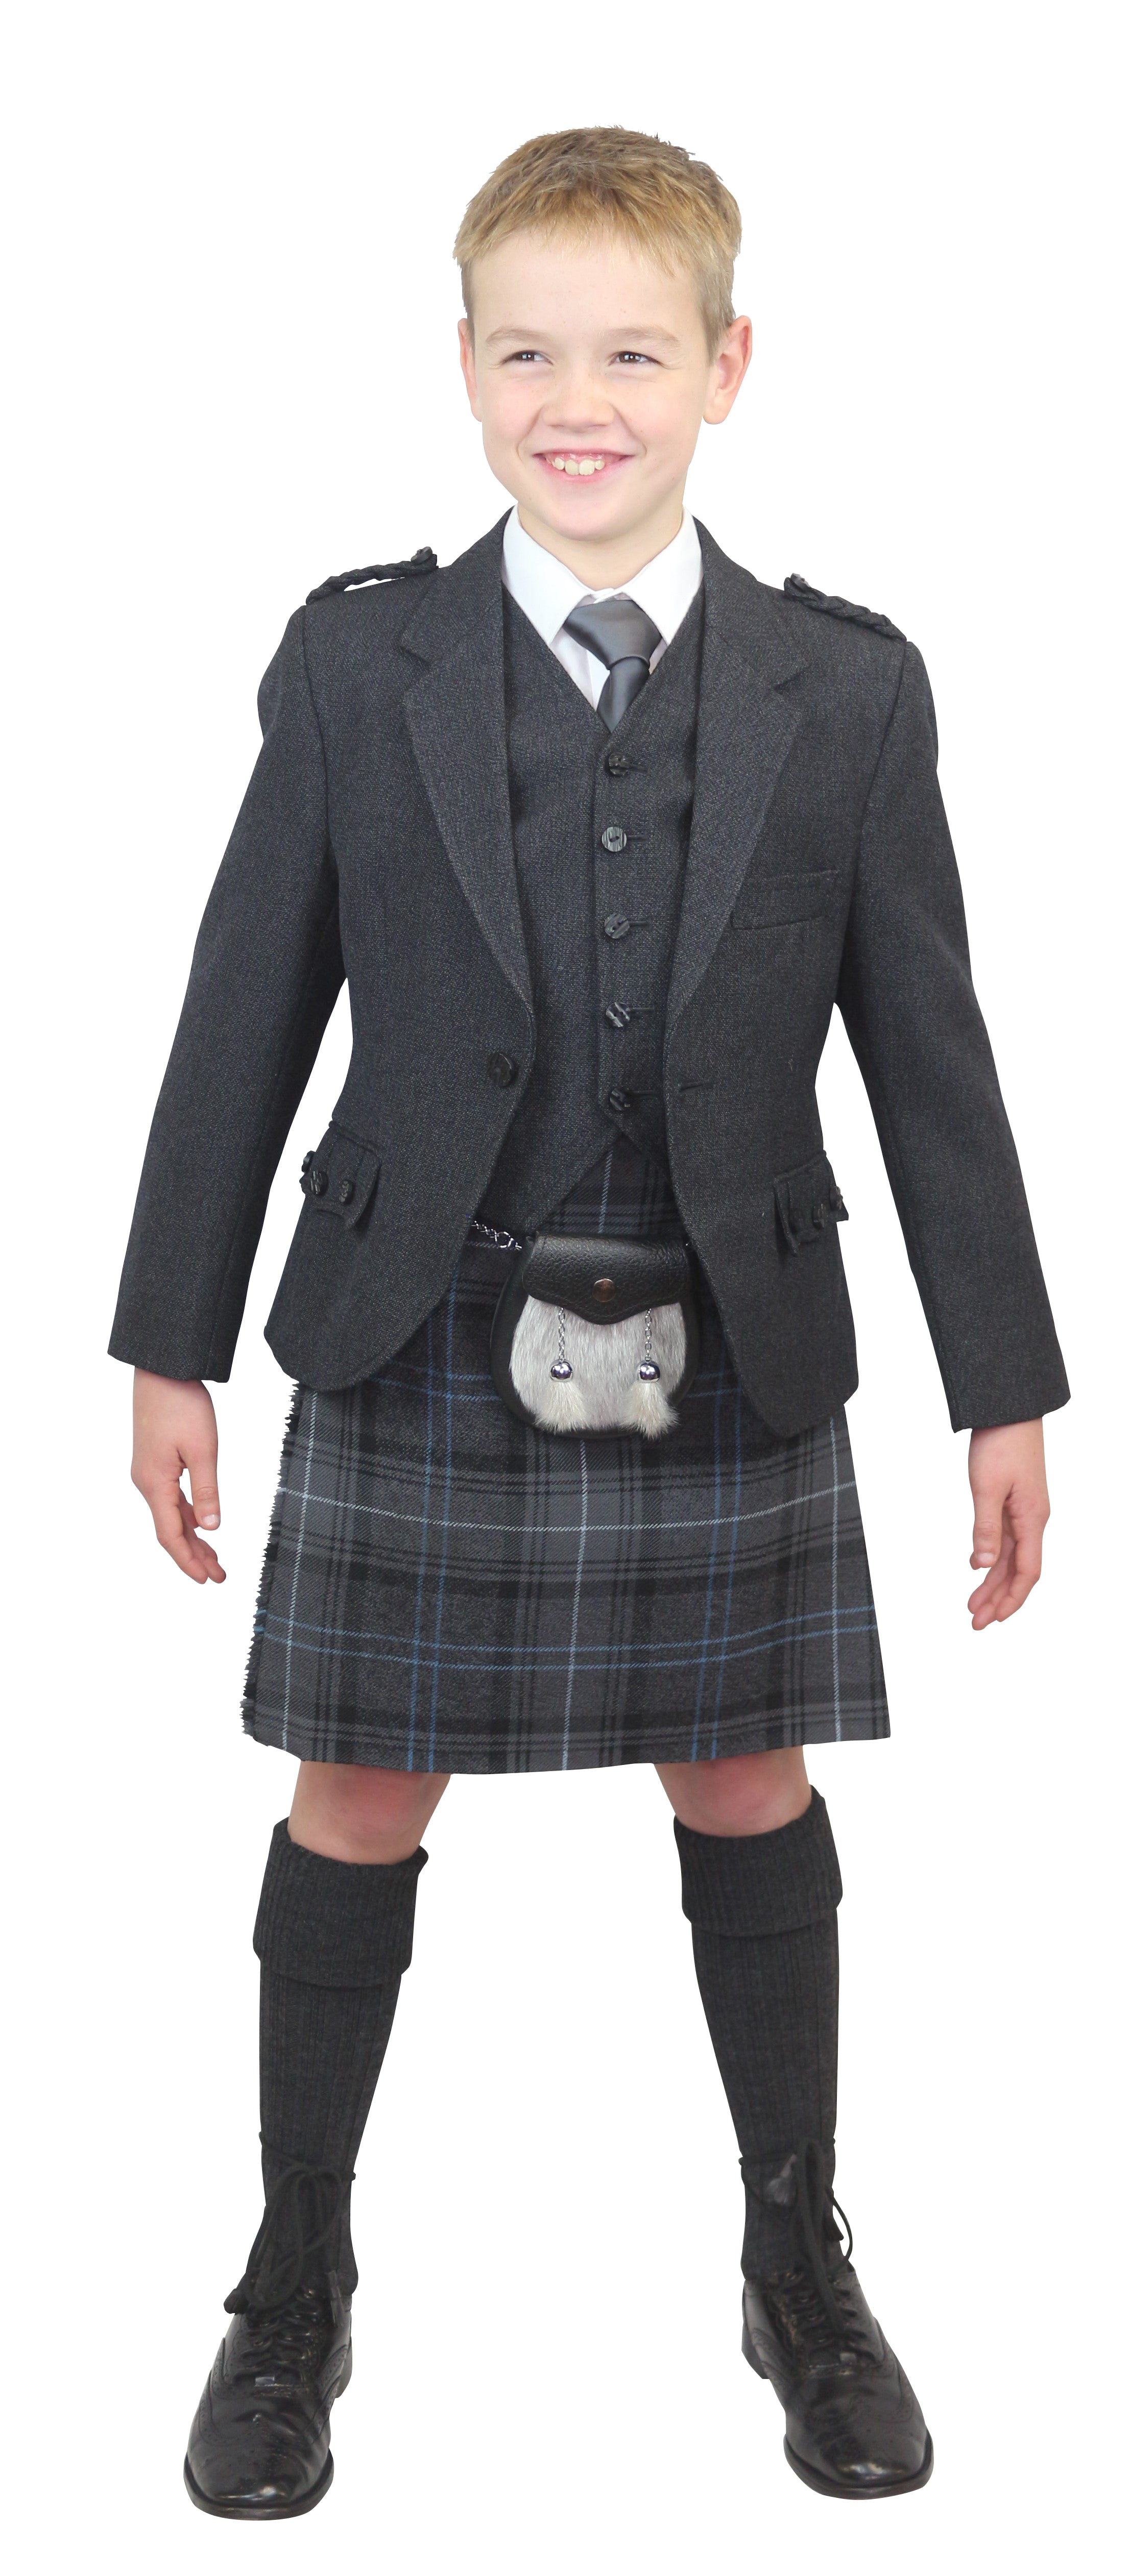 Childrens Kilts - Made to Measure - Anderson Kilts